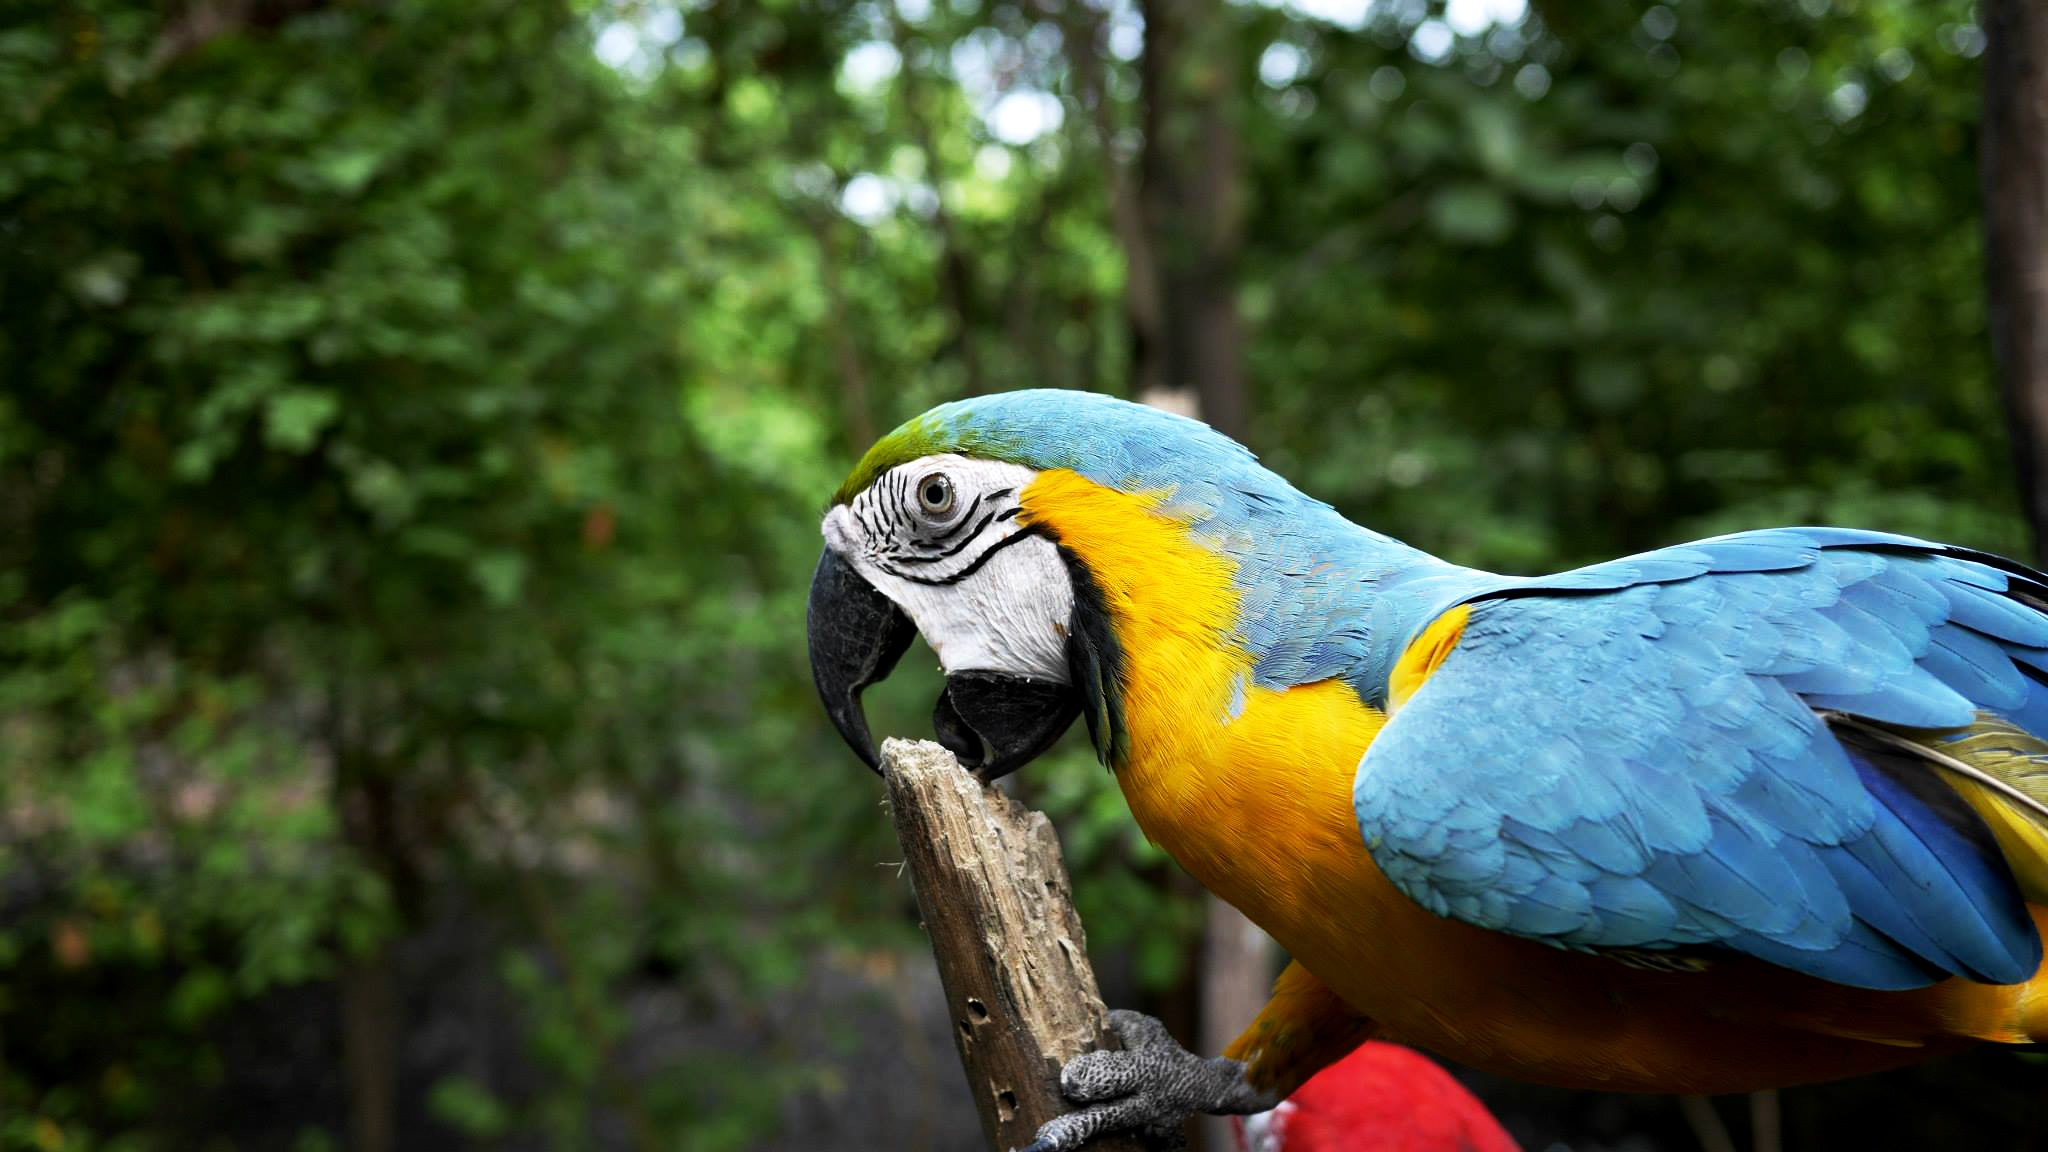 Parrots for sale around the UK